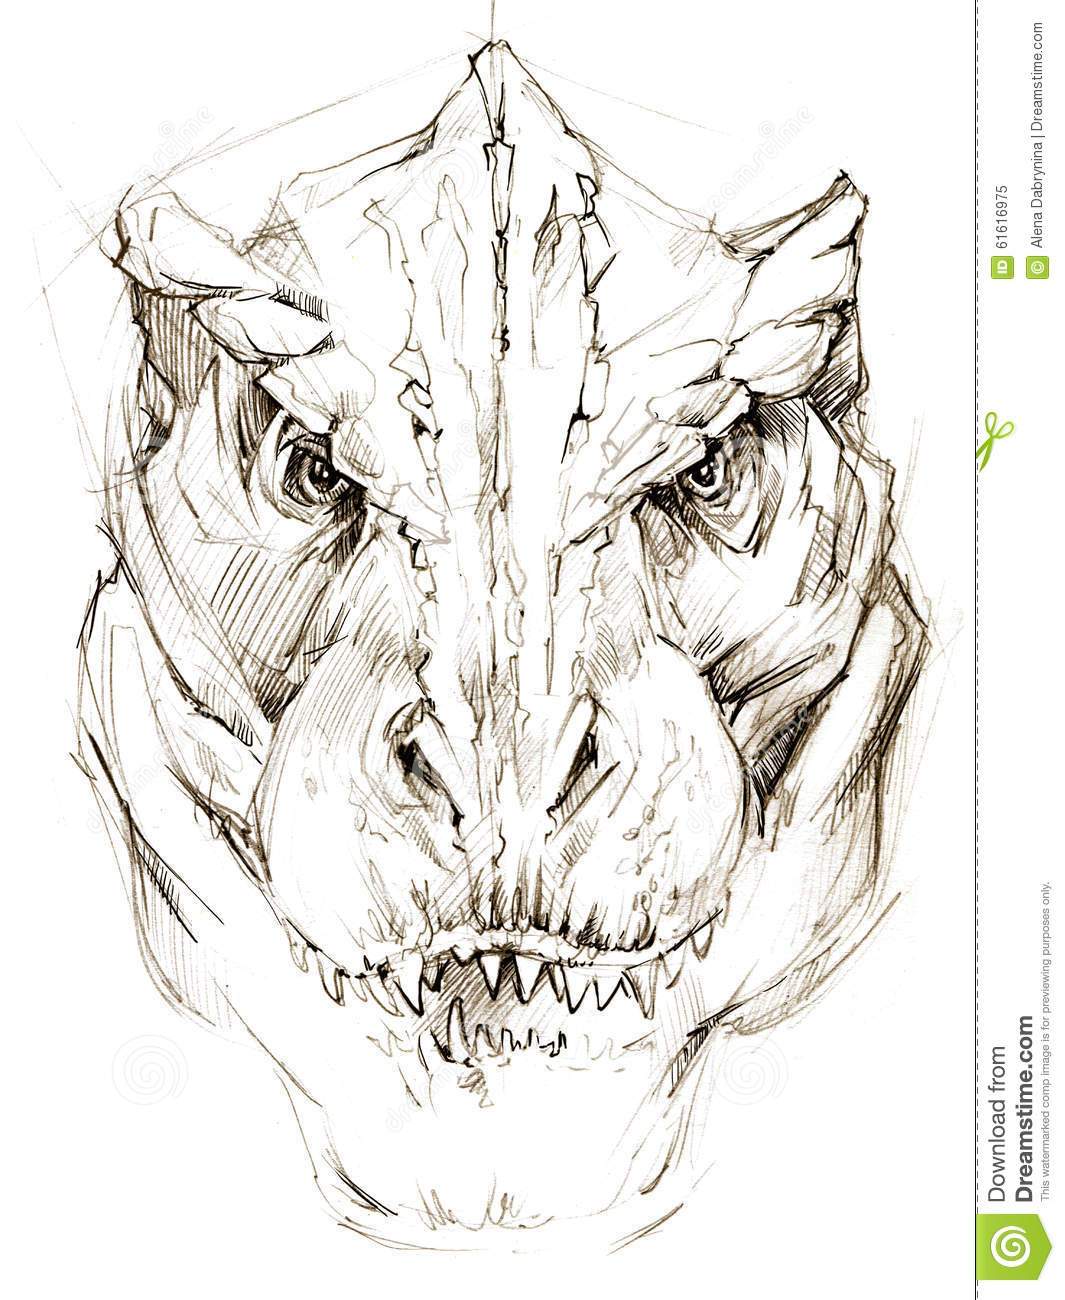 Image of: Skeleton Dinosaur Dinosaur Drawing Pencil Sketch Ancient Dinosaur Extinct Animal Illustration Dinosaur Sketch Background Educationcoms Dinosaur Dinosaur Drawing Pencil Sketch Stock Illustration